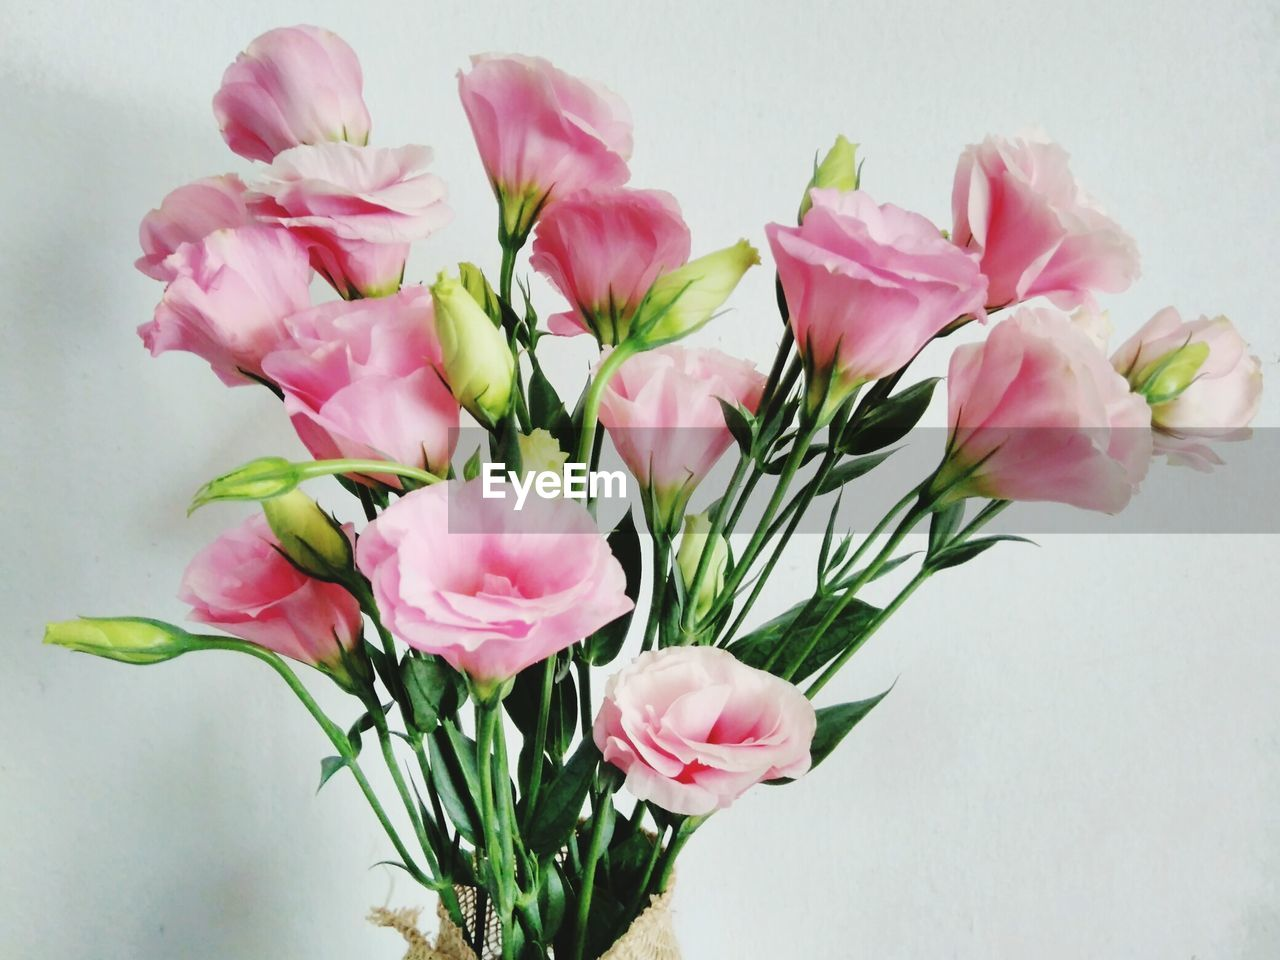 flower, pink color, petal, freshness, fragility, flower head, nature, no people, beauty in nature, studio shot, close-up, bouquet, growth, indoors, white background, day, periwinkle